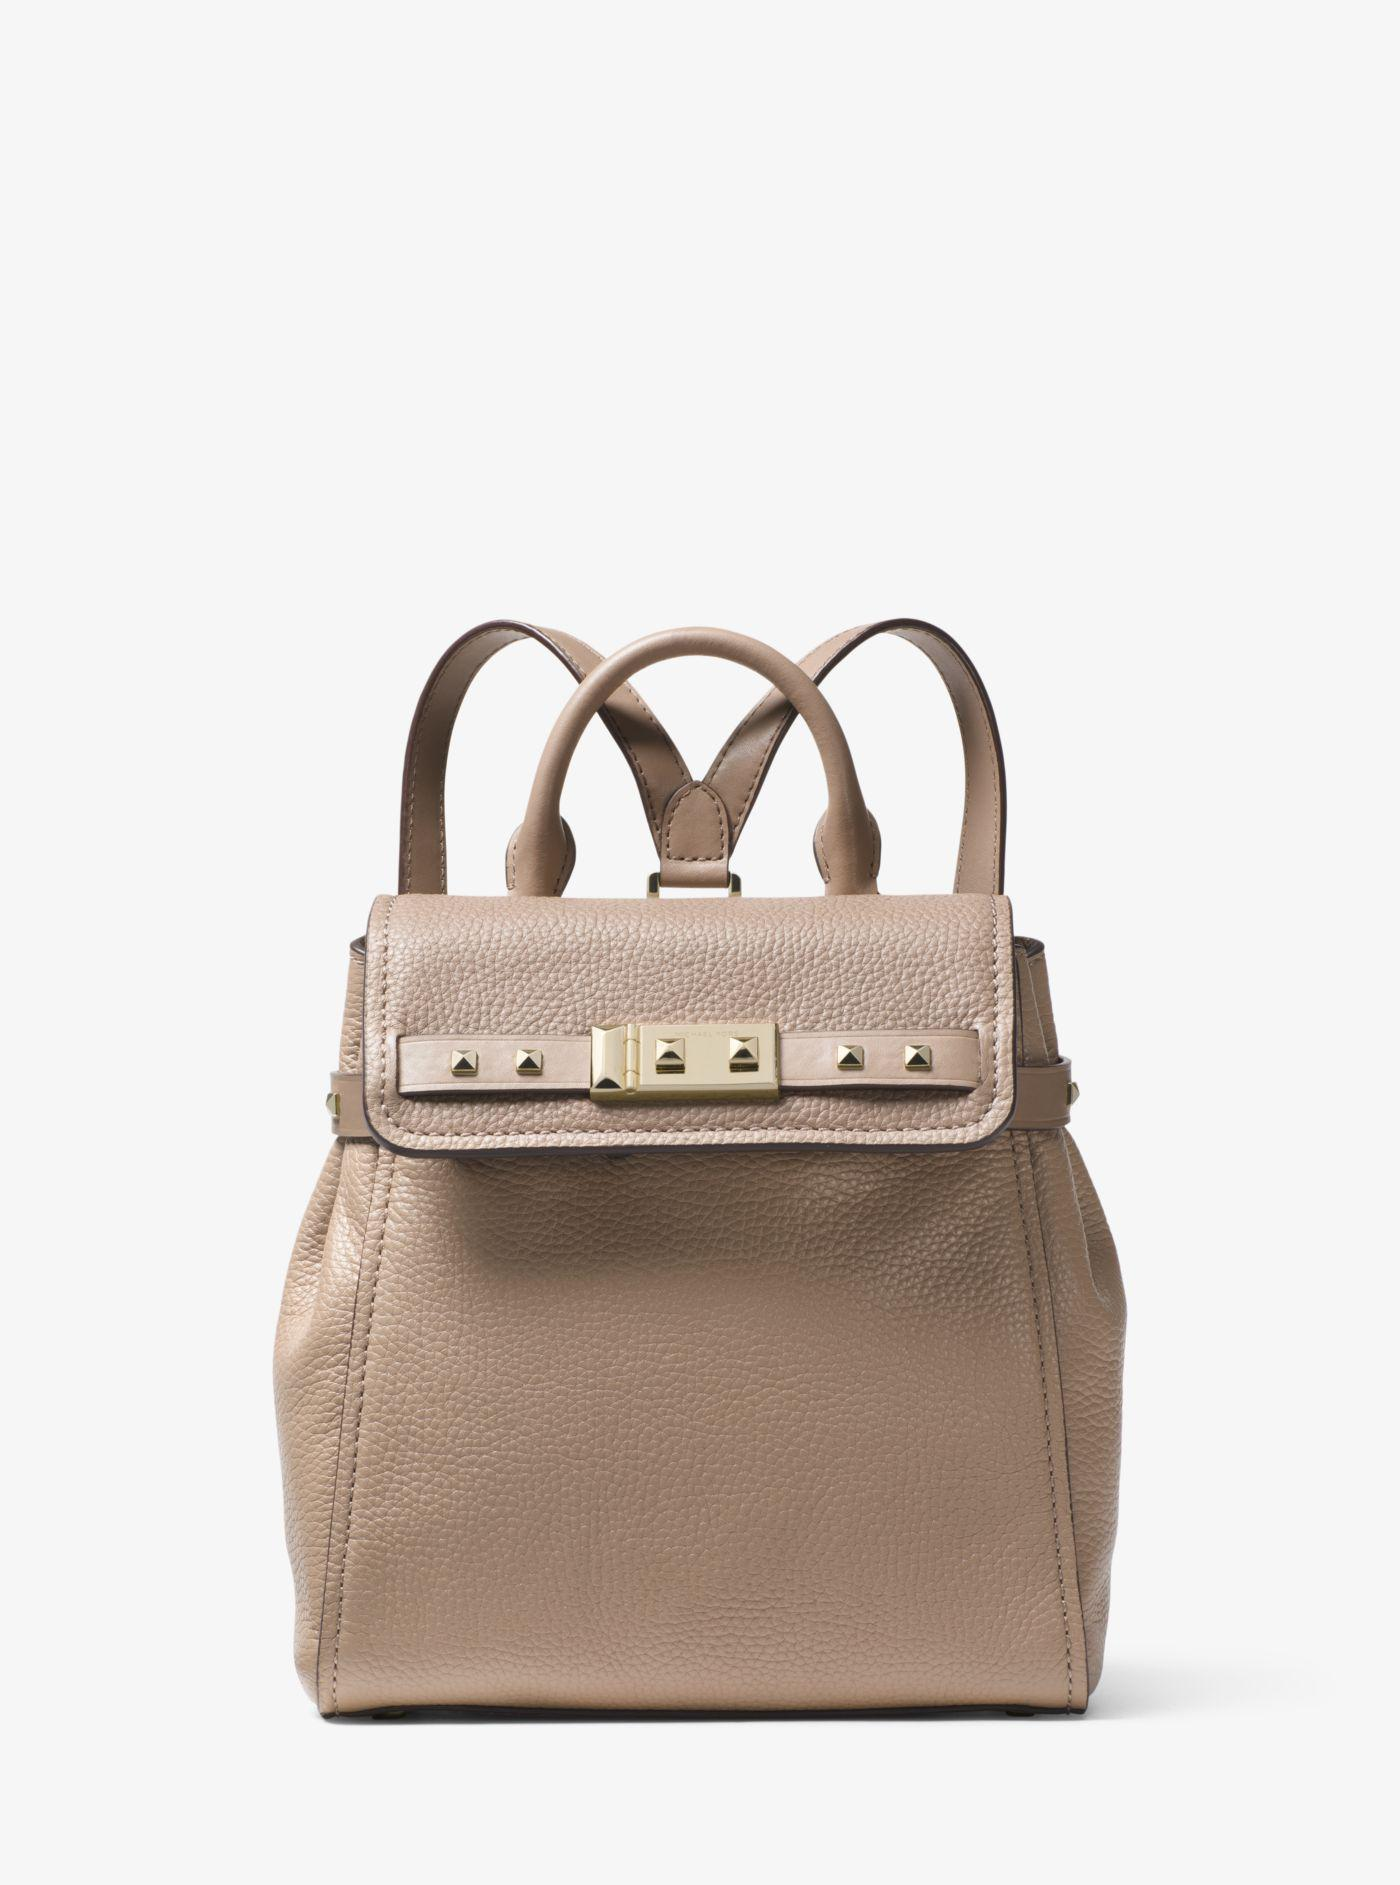 7e7e72a38955 Lyst - Michael Kors Addison Small Pebbled Leather Backpack